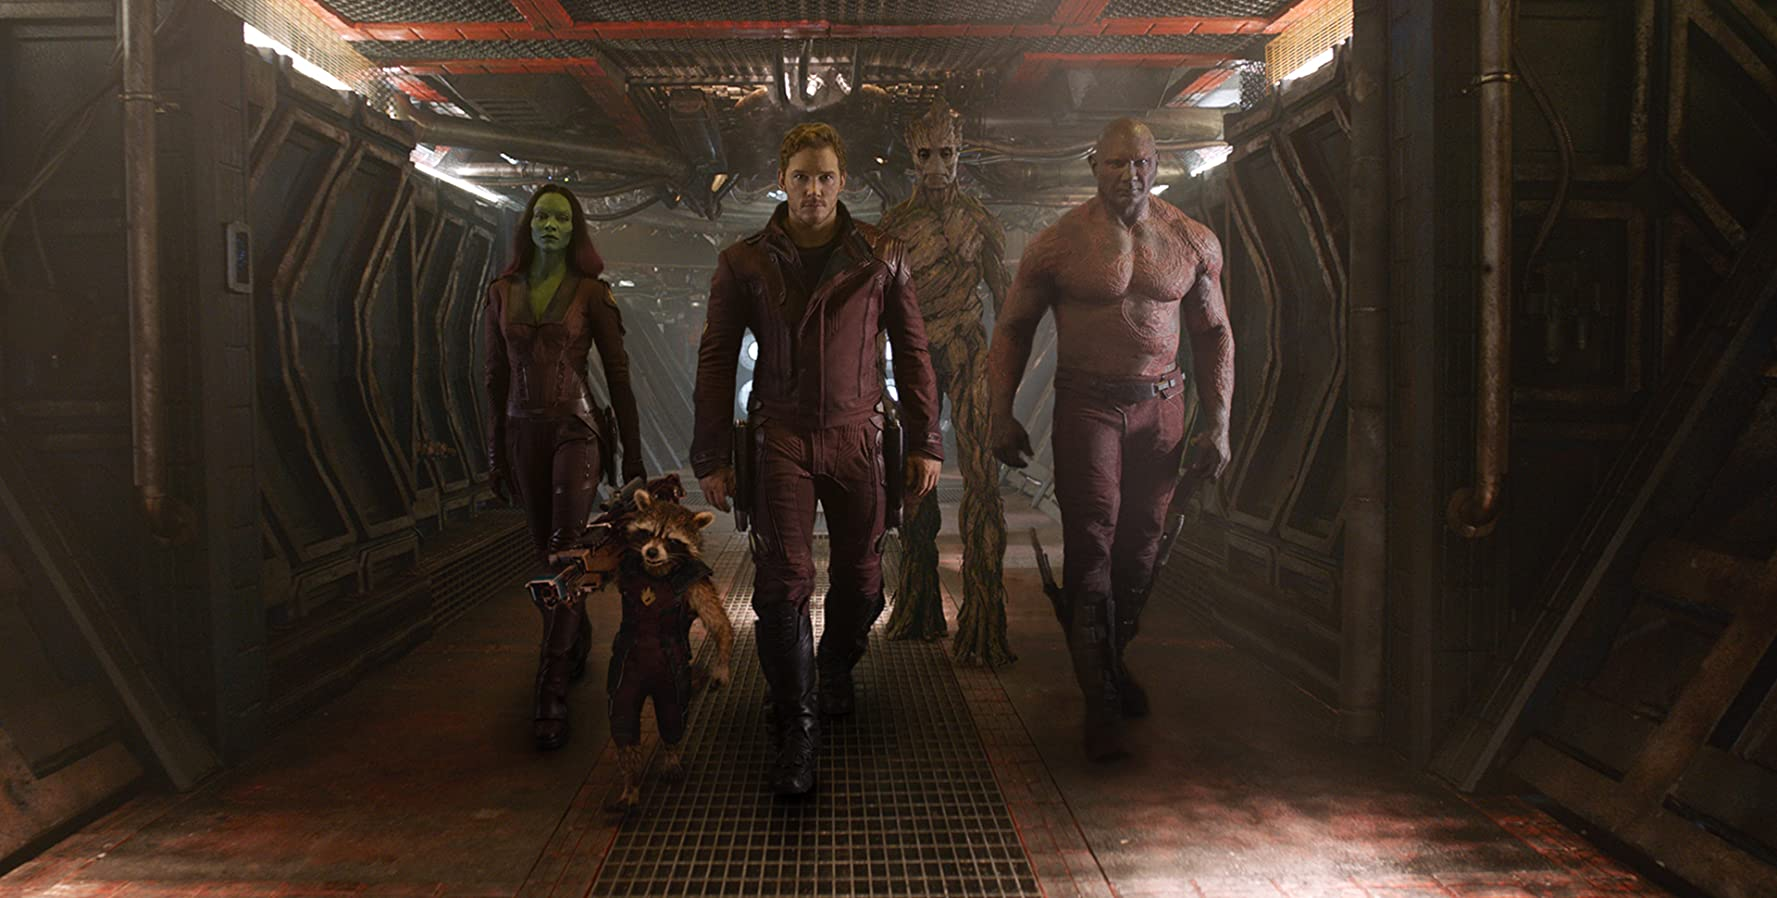 Guardians of the Galaxy (2014) / IMDB.com